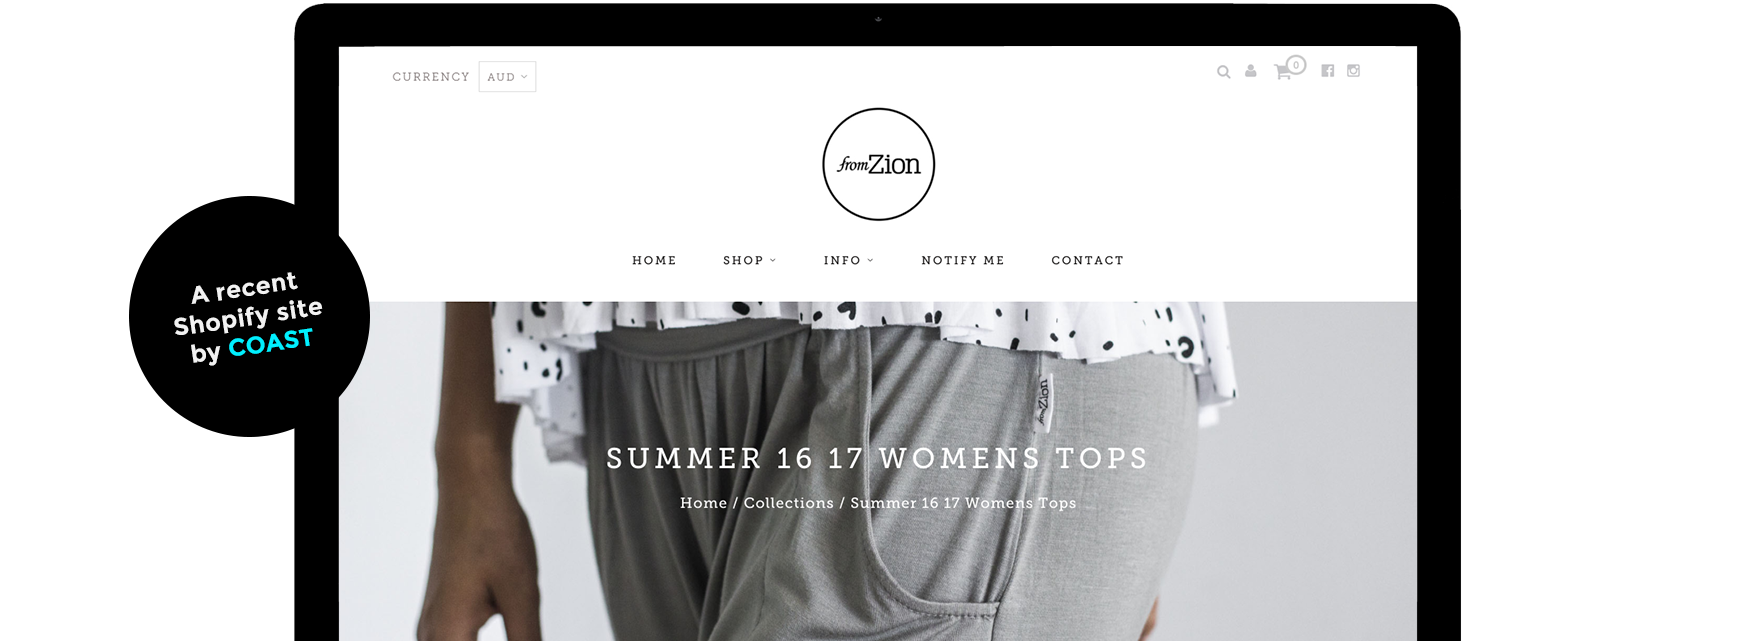 from zion shopify website development